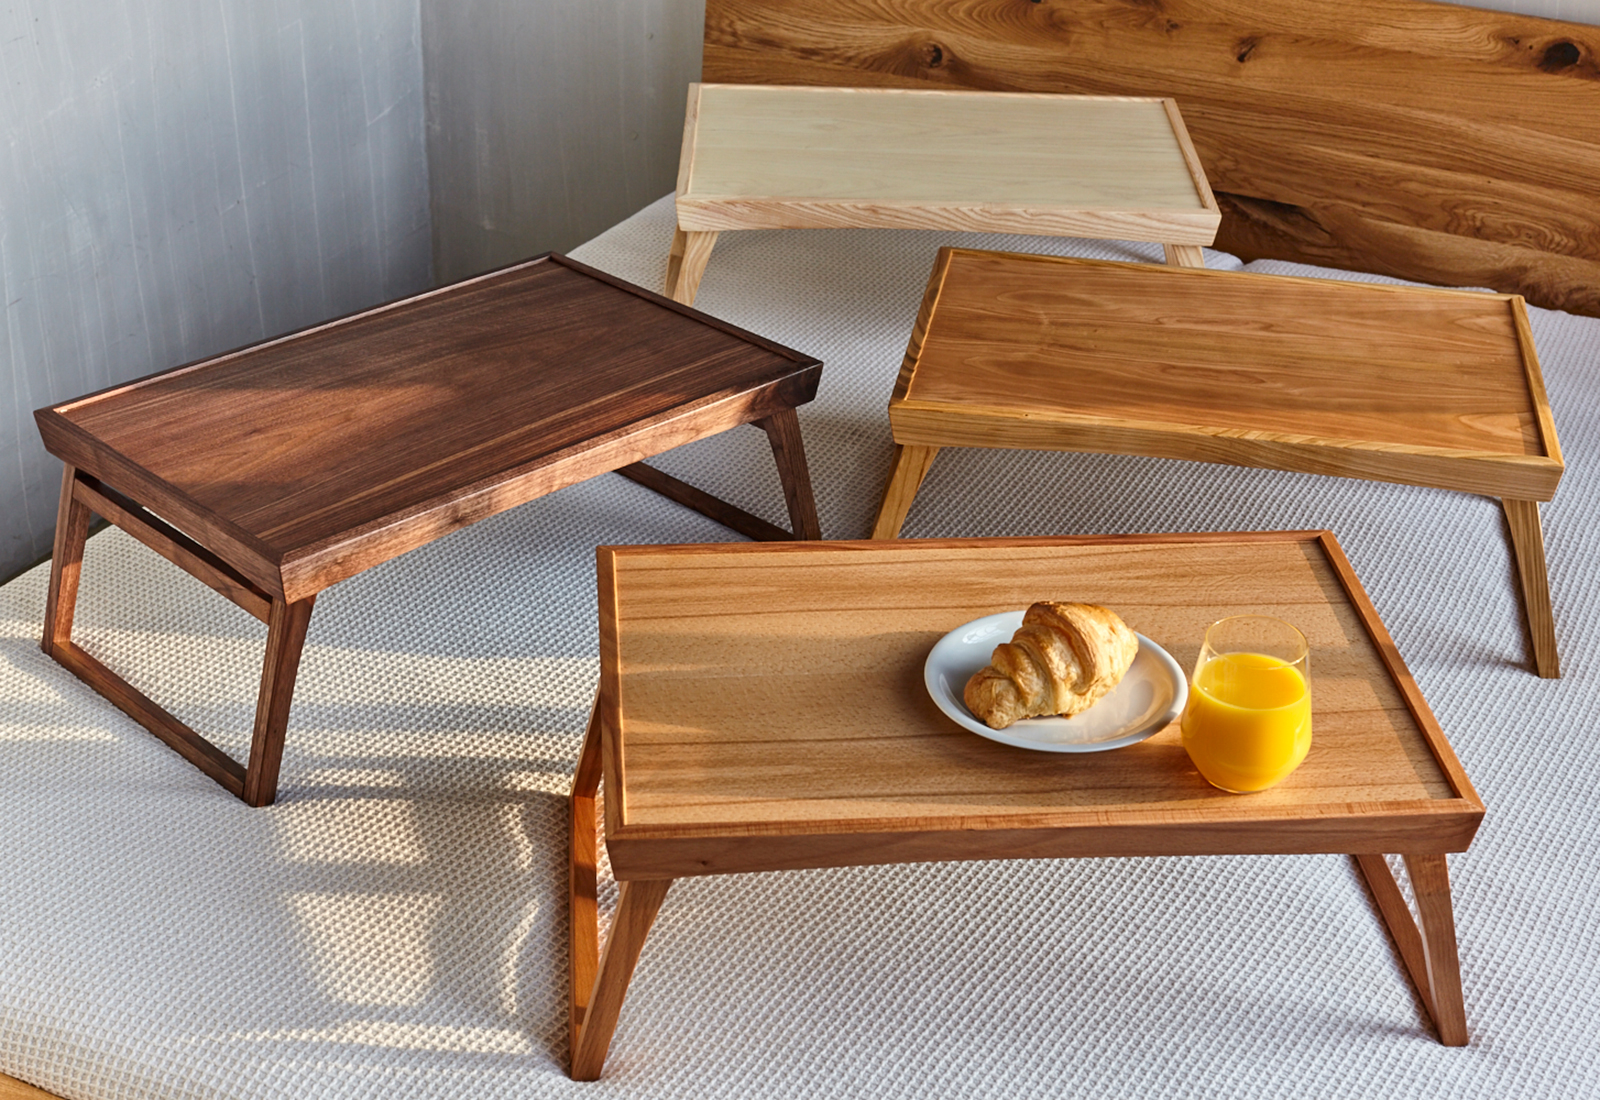 DÉsirÉe Bed Tray Table Laptop Stand Breakfast Book Reader E Holder Coffee Support Sixay